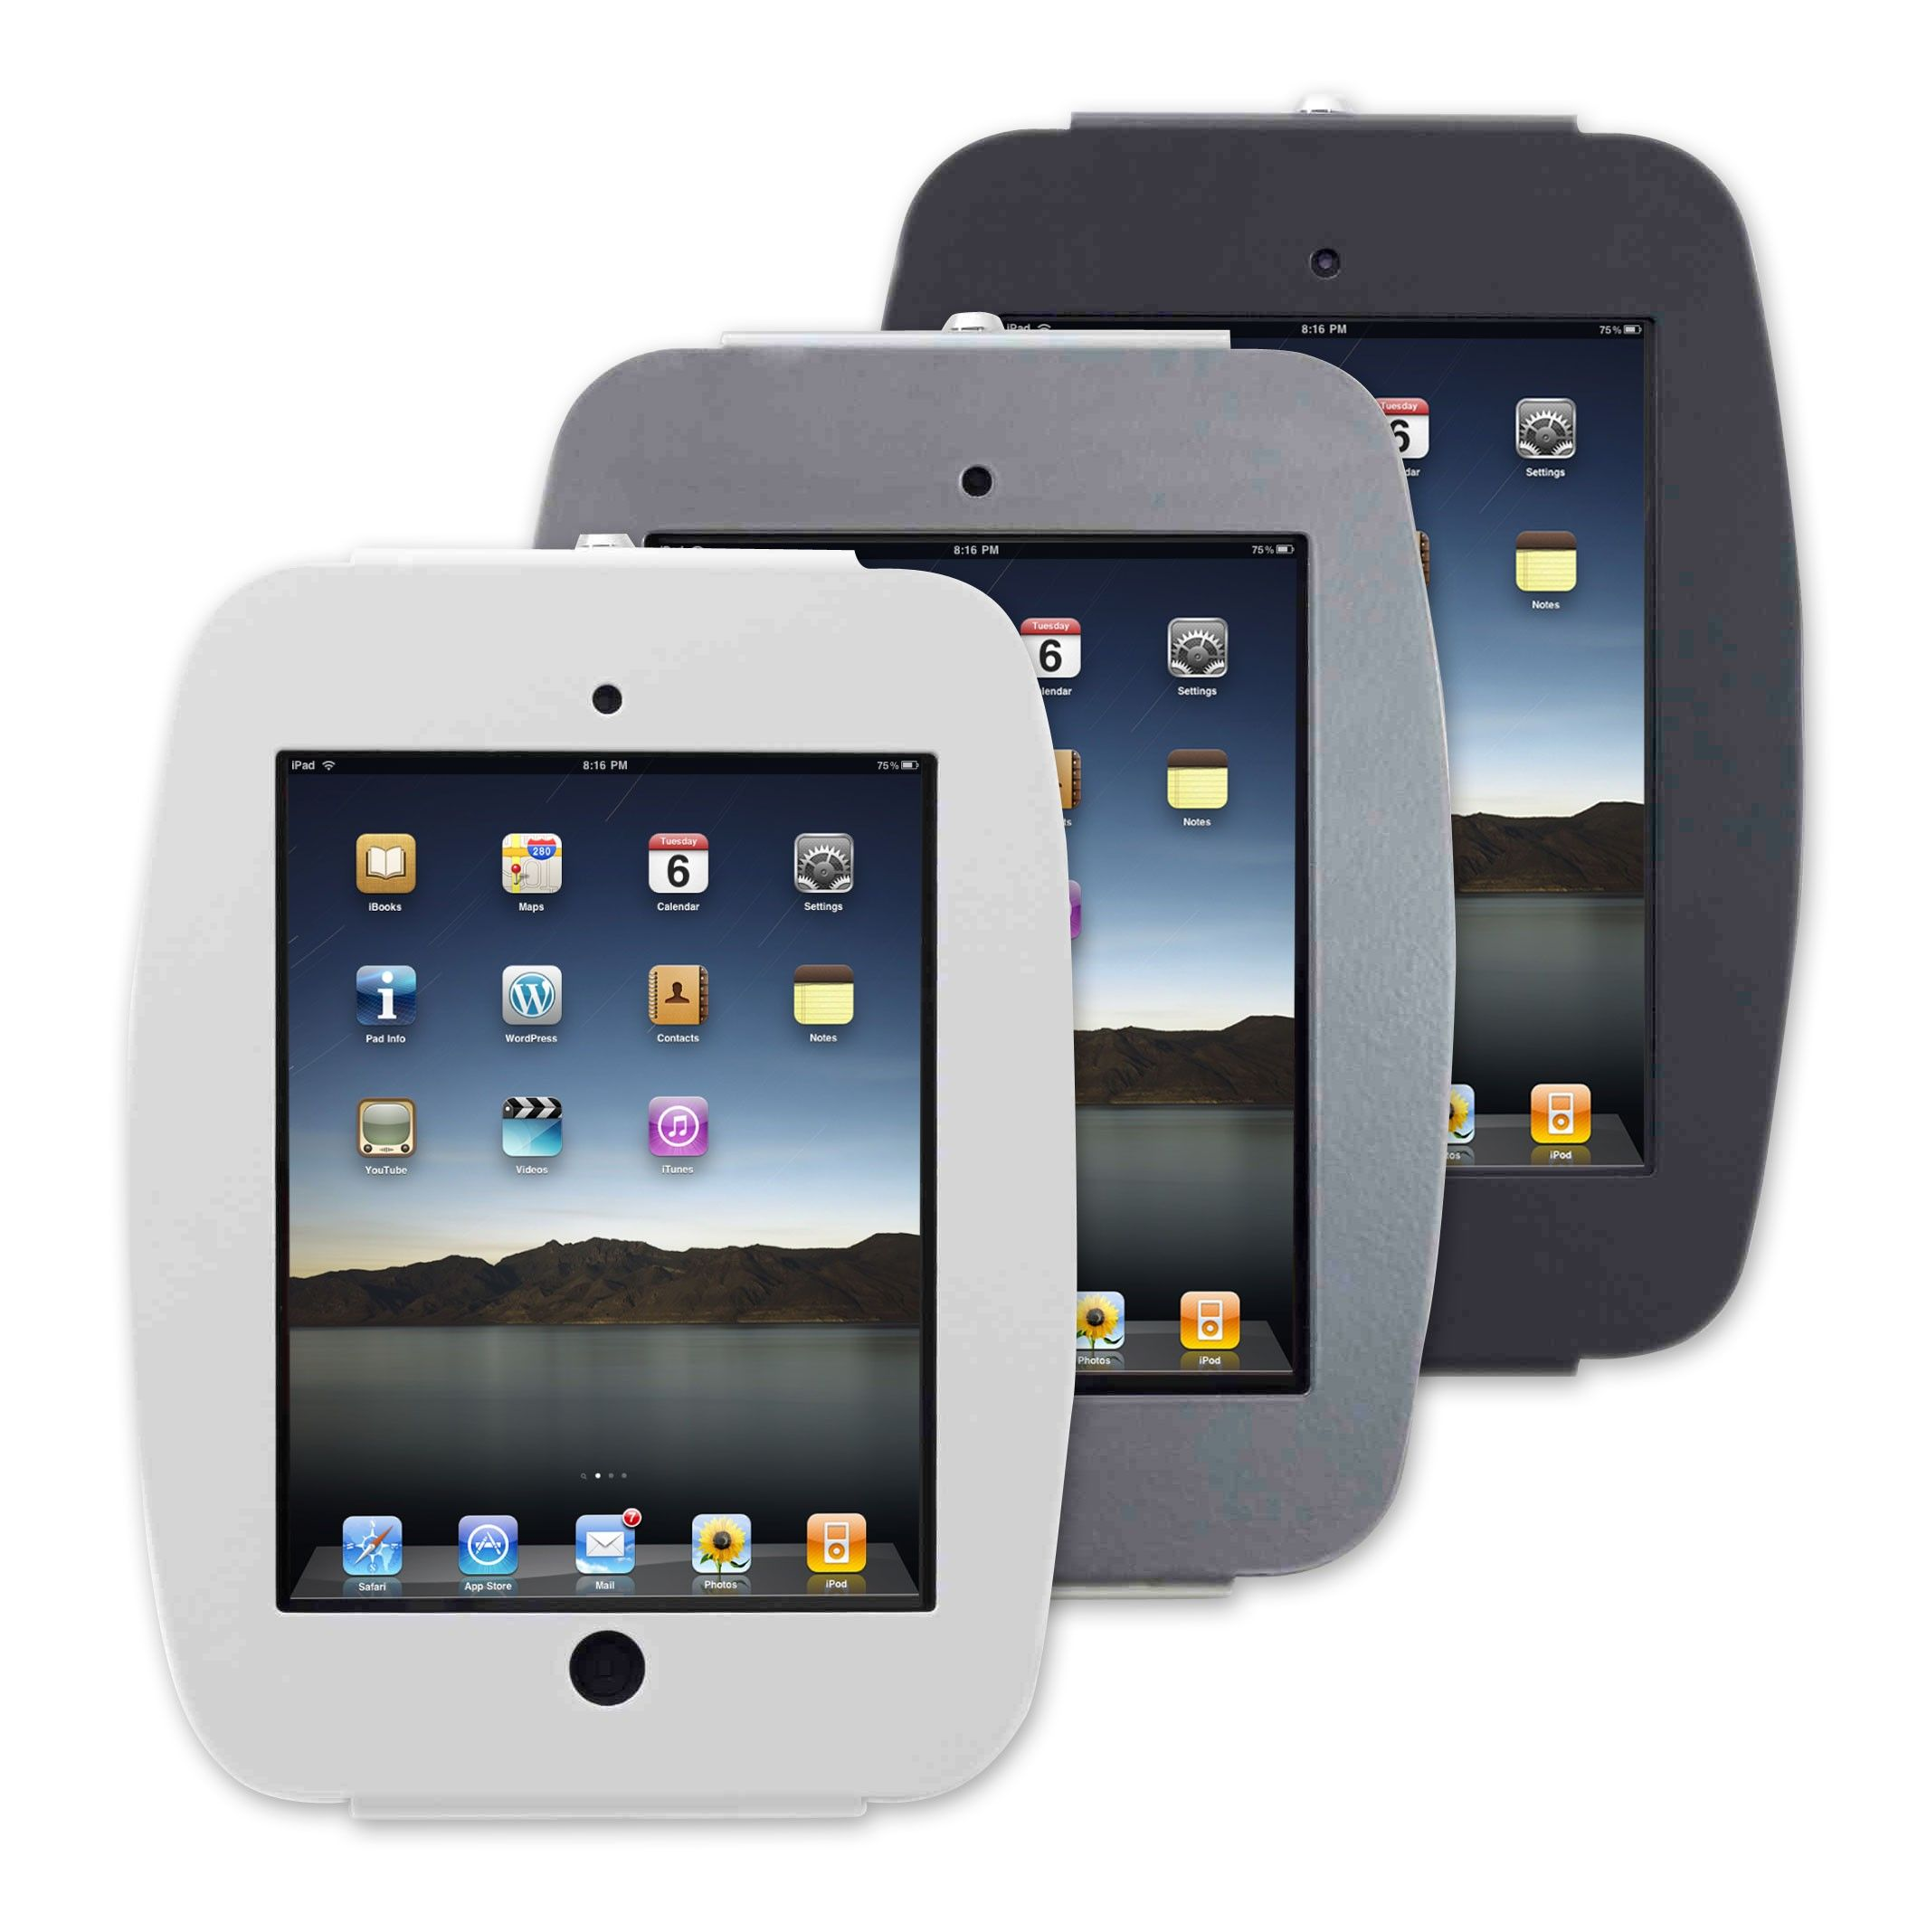 Ipad Wall Mount 96 Maclocks Space Ipad Enclosure Silver Ipad Locking Enclosure Is A Top Security Version Of Our Best Selling Ipad Lock And Secur With Images Ipad Kiosk